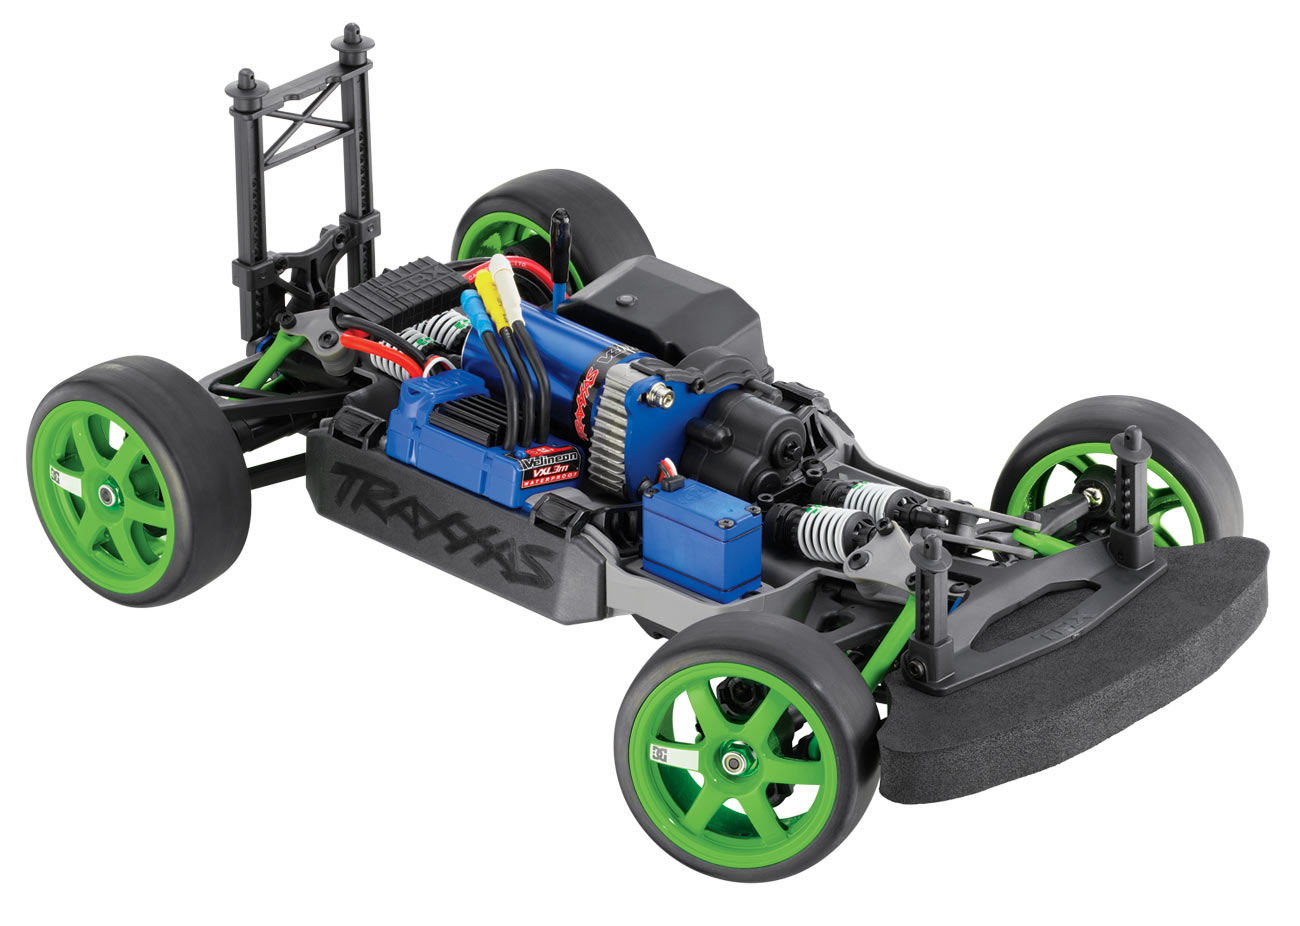 Le Topik Voiture Radiocommande Lectrique Modelisme Page 179 Index Of Tiedostot Traxxas Stampede 4x4 Vxl Http Traxxascom Sites Default Files 7309 Ken Block Chassis 3qtrhigh